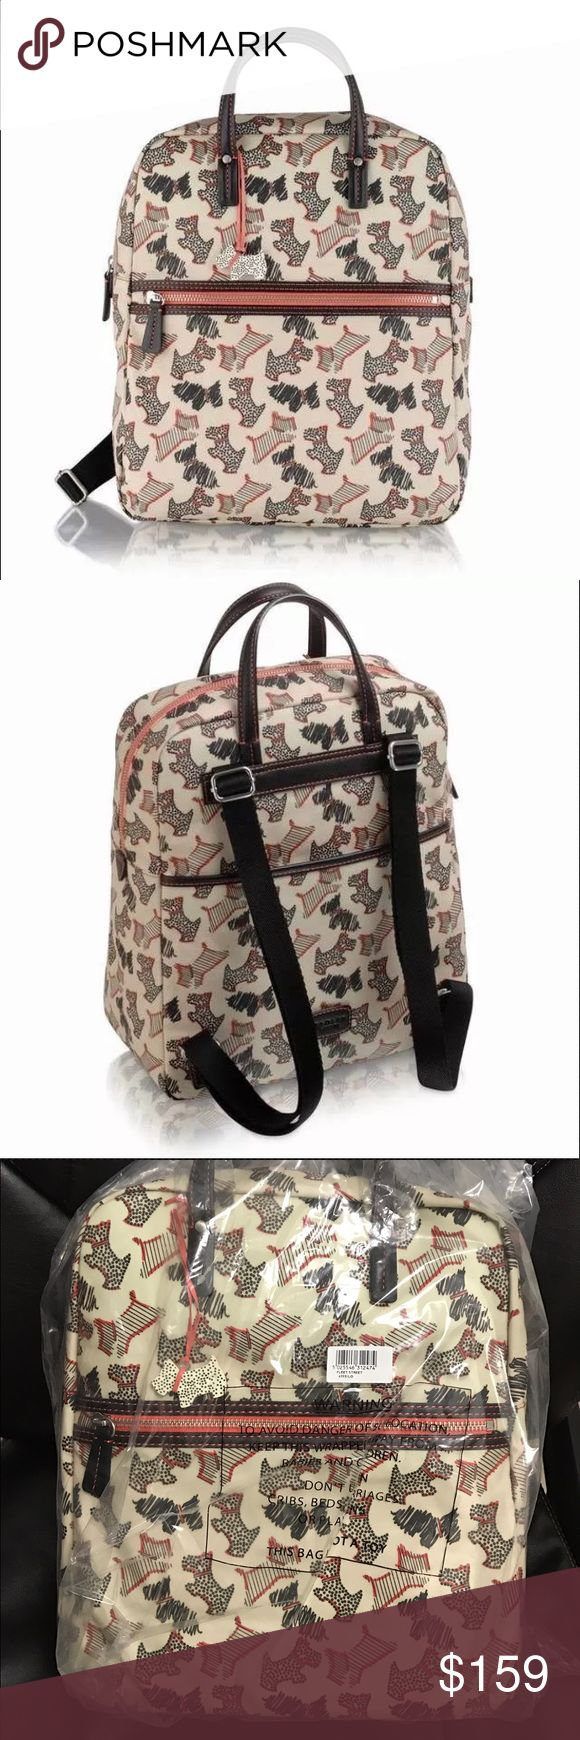 Radley Fleet Street Large Zip‑top Ivory Backpack Made from Oilskin Features zip fastening with front and back slip pocket and an adjustable strap The inside features internal pockets which includes a phone pocket Strap Length: 80cm Comes with a detachable charm Please note this style does not come with a dust bag Dimension: W28 x H35 x D13 cm Product code: 63531 This is a SOLDOUT item. Bought directly from Radley London with receipt. Immaculate condition. Still in wrap as…